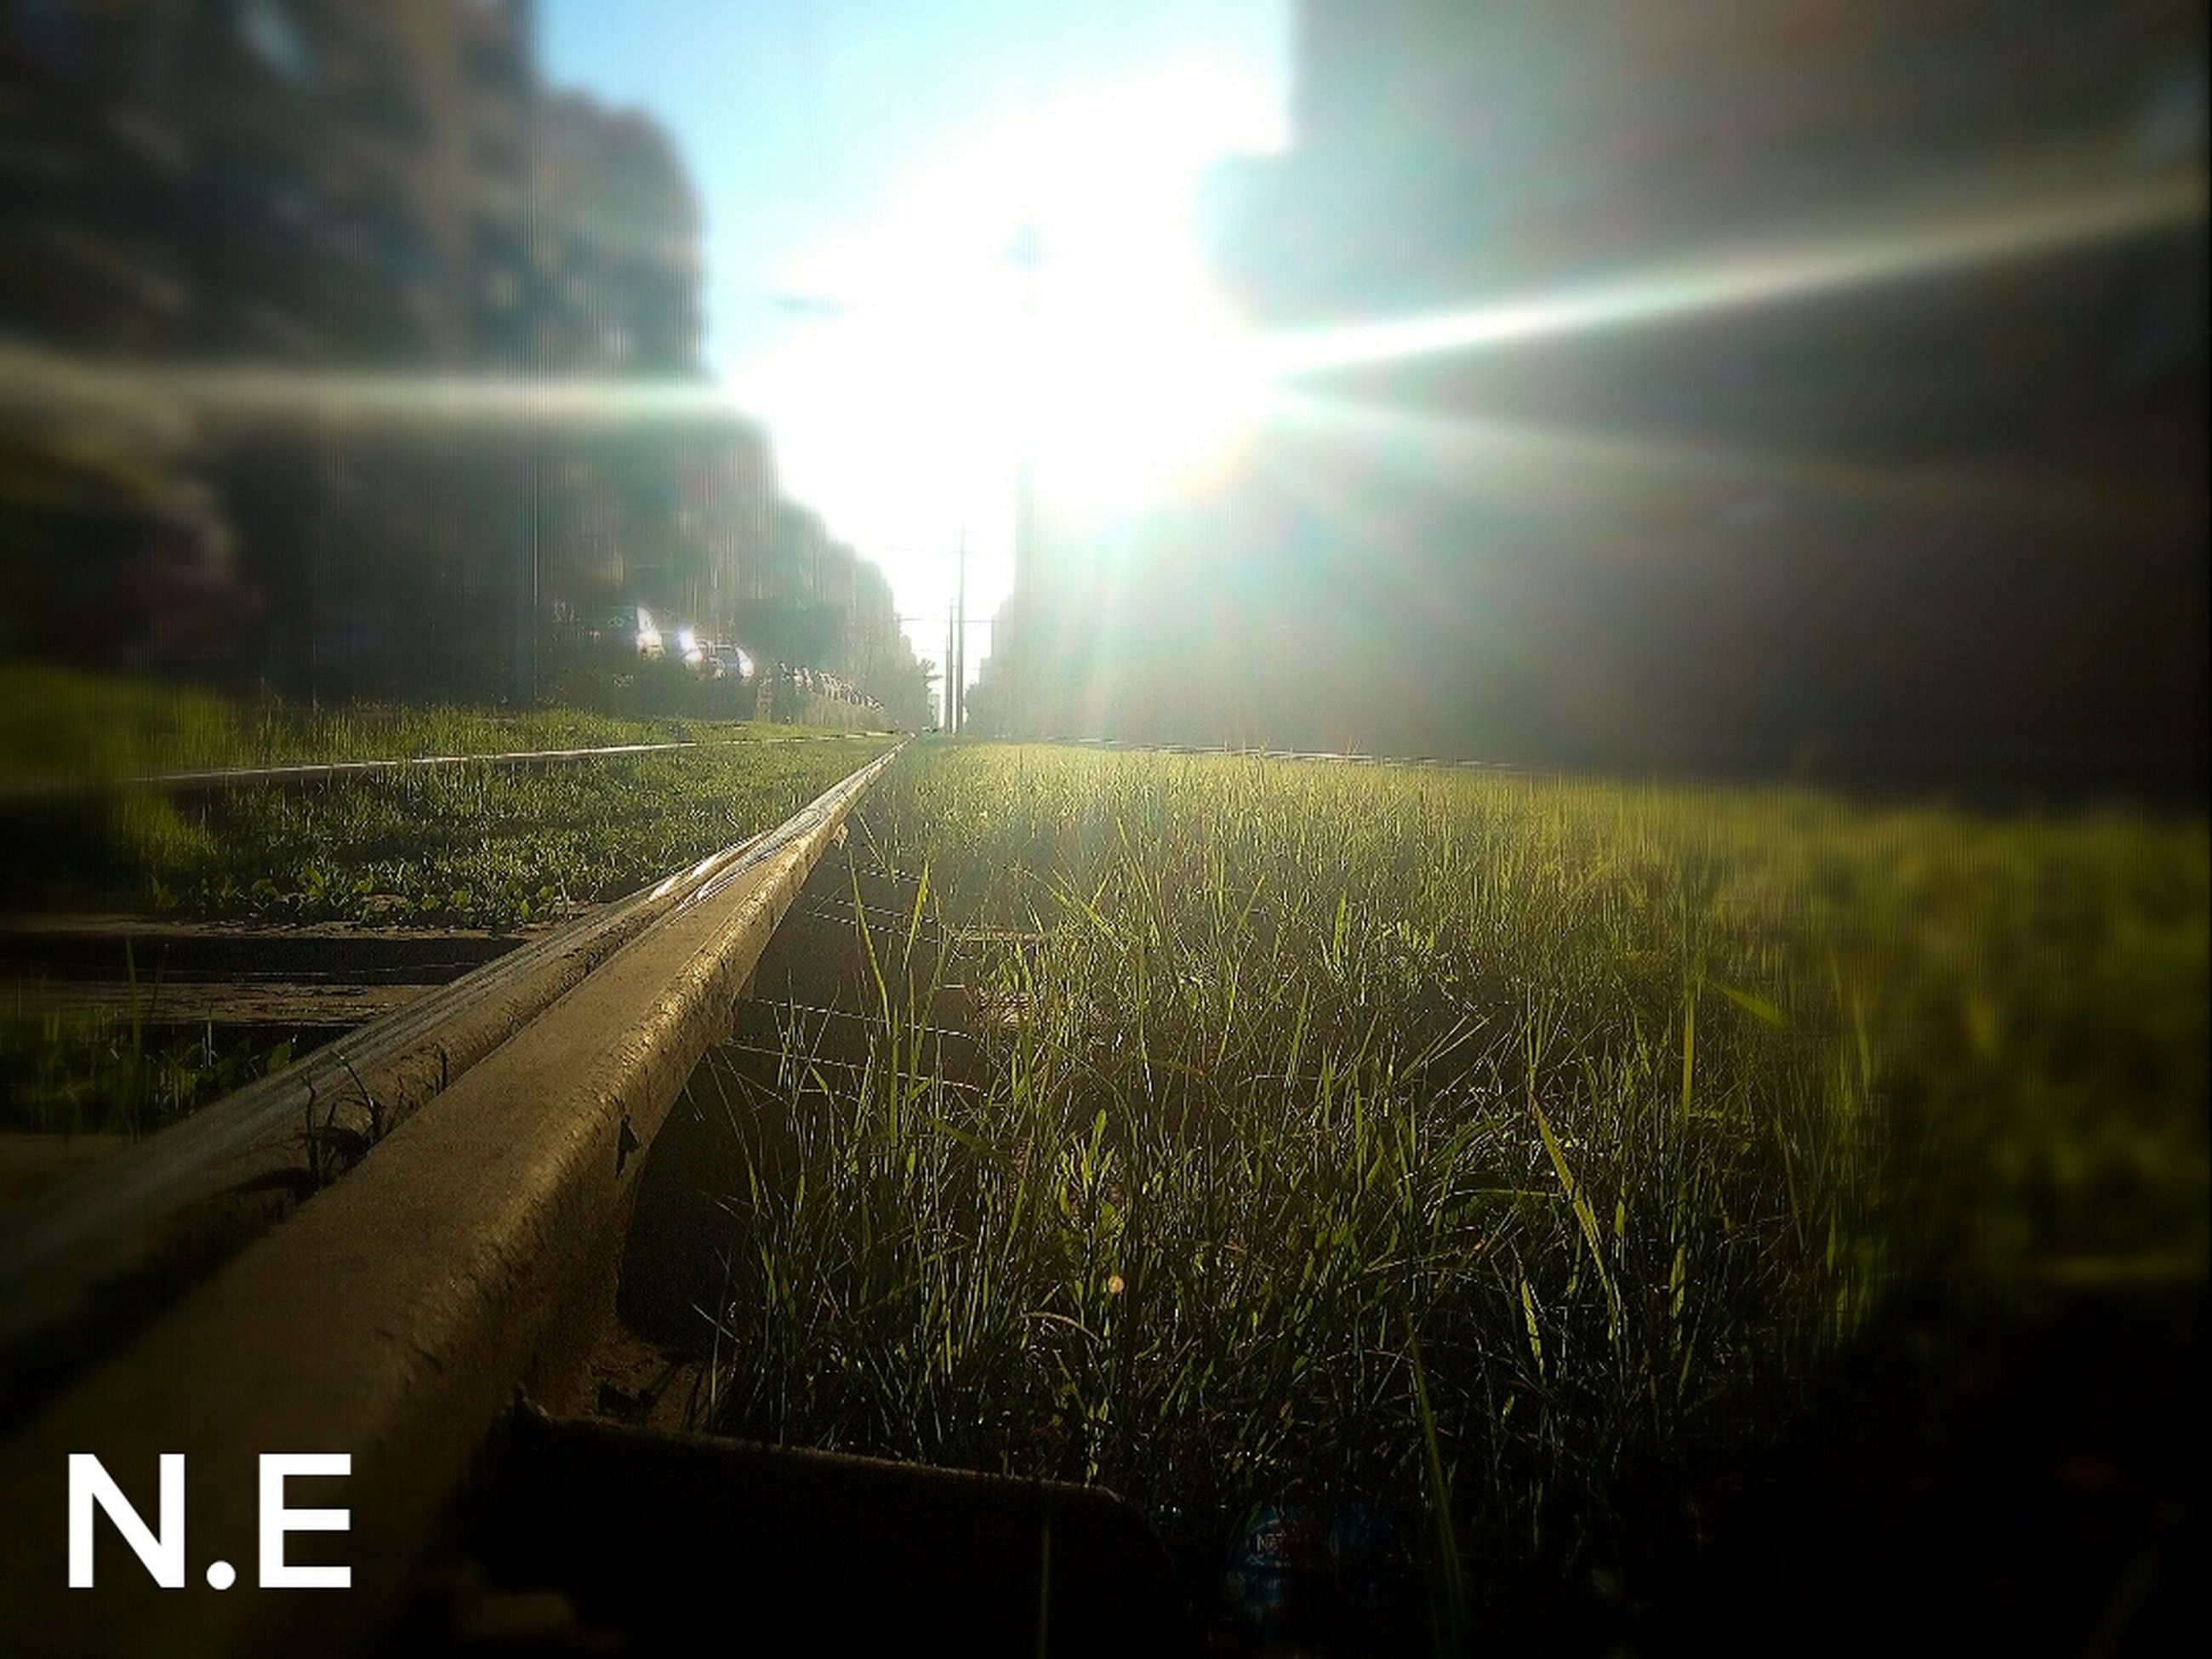 lens flare, sun, sunlight, field, grass, nature, sunbeam, no people, tranquil scene, tranquility, landscape, transportation, sky, railroad track, scenics, outdoors, rail transportation, growth, beauty in nature, day, rural scene, agriculture, close-up